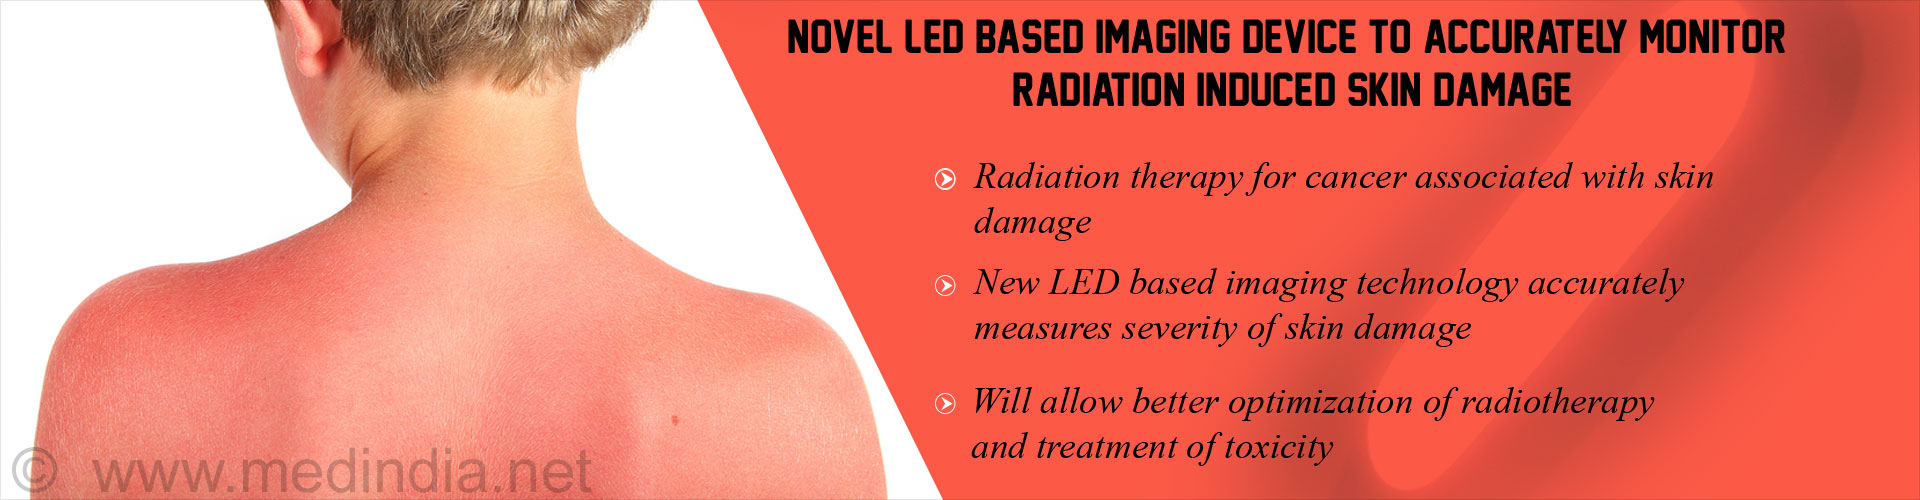 LED Device Measures Radiation Induced Skin Toxicity